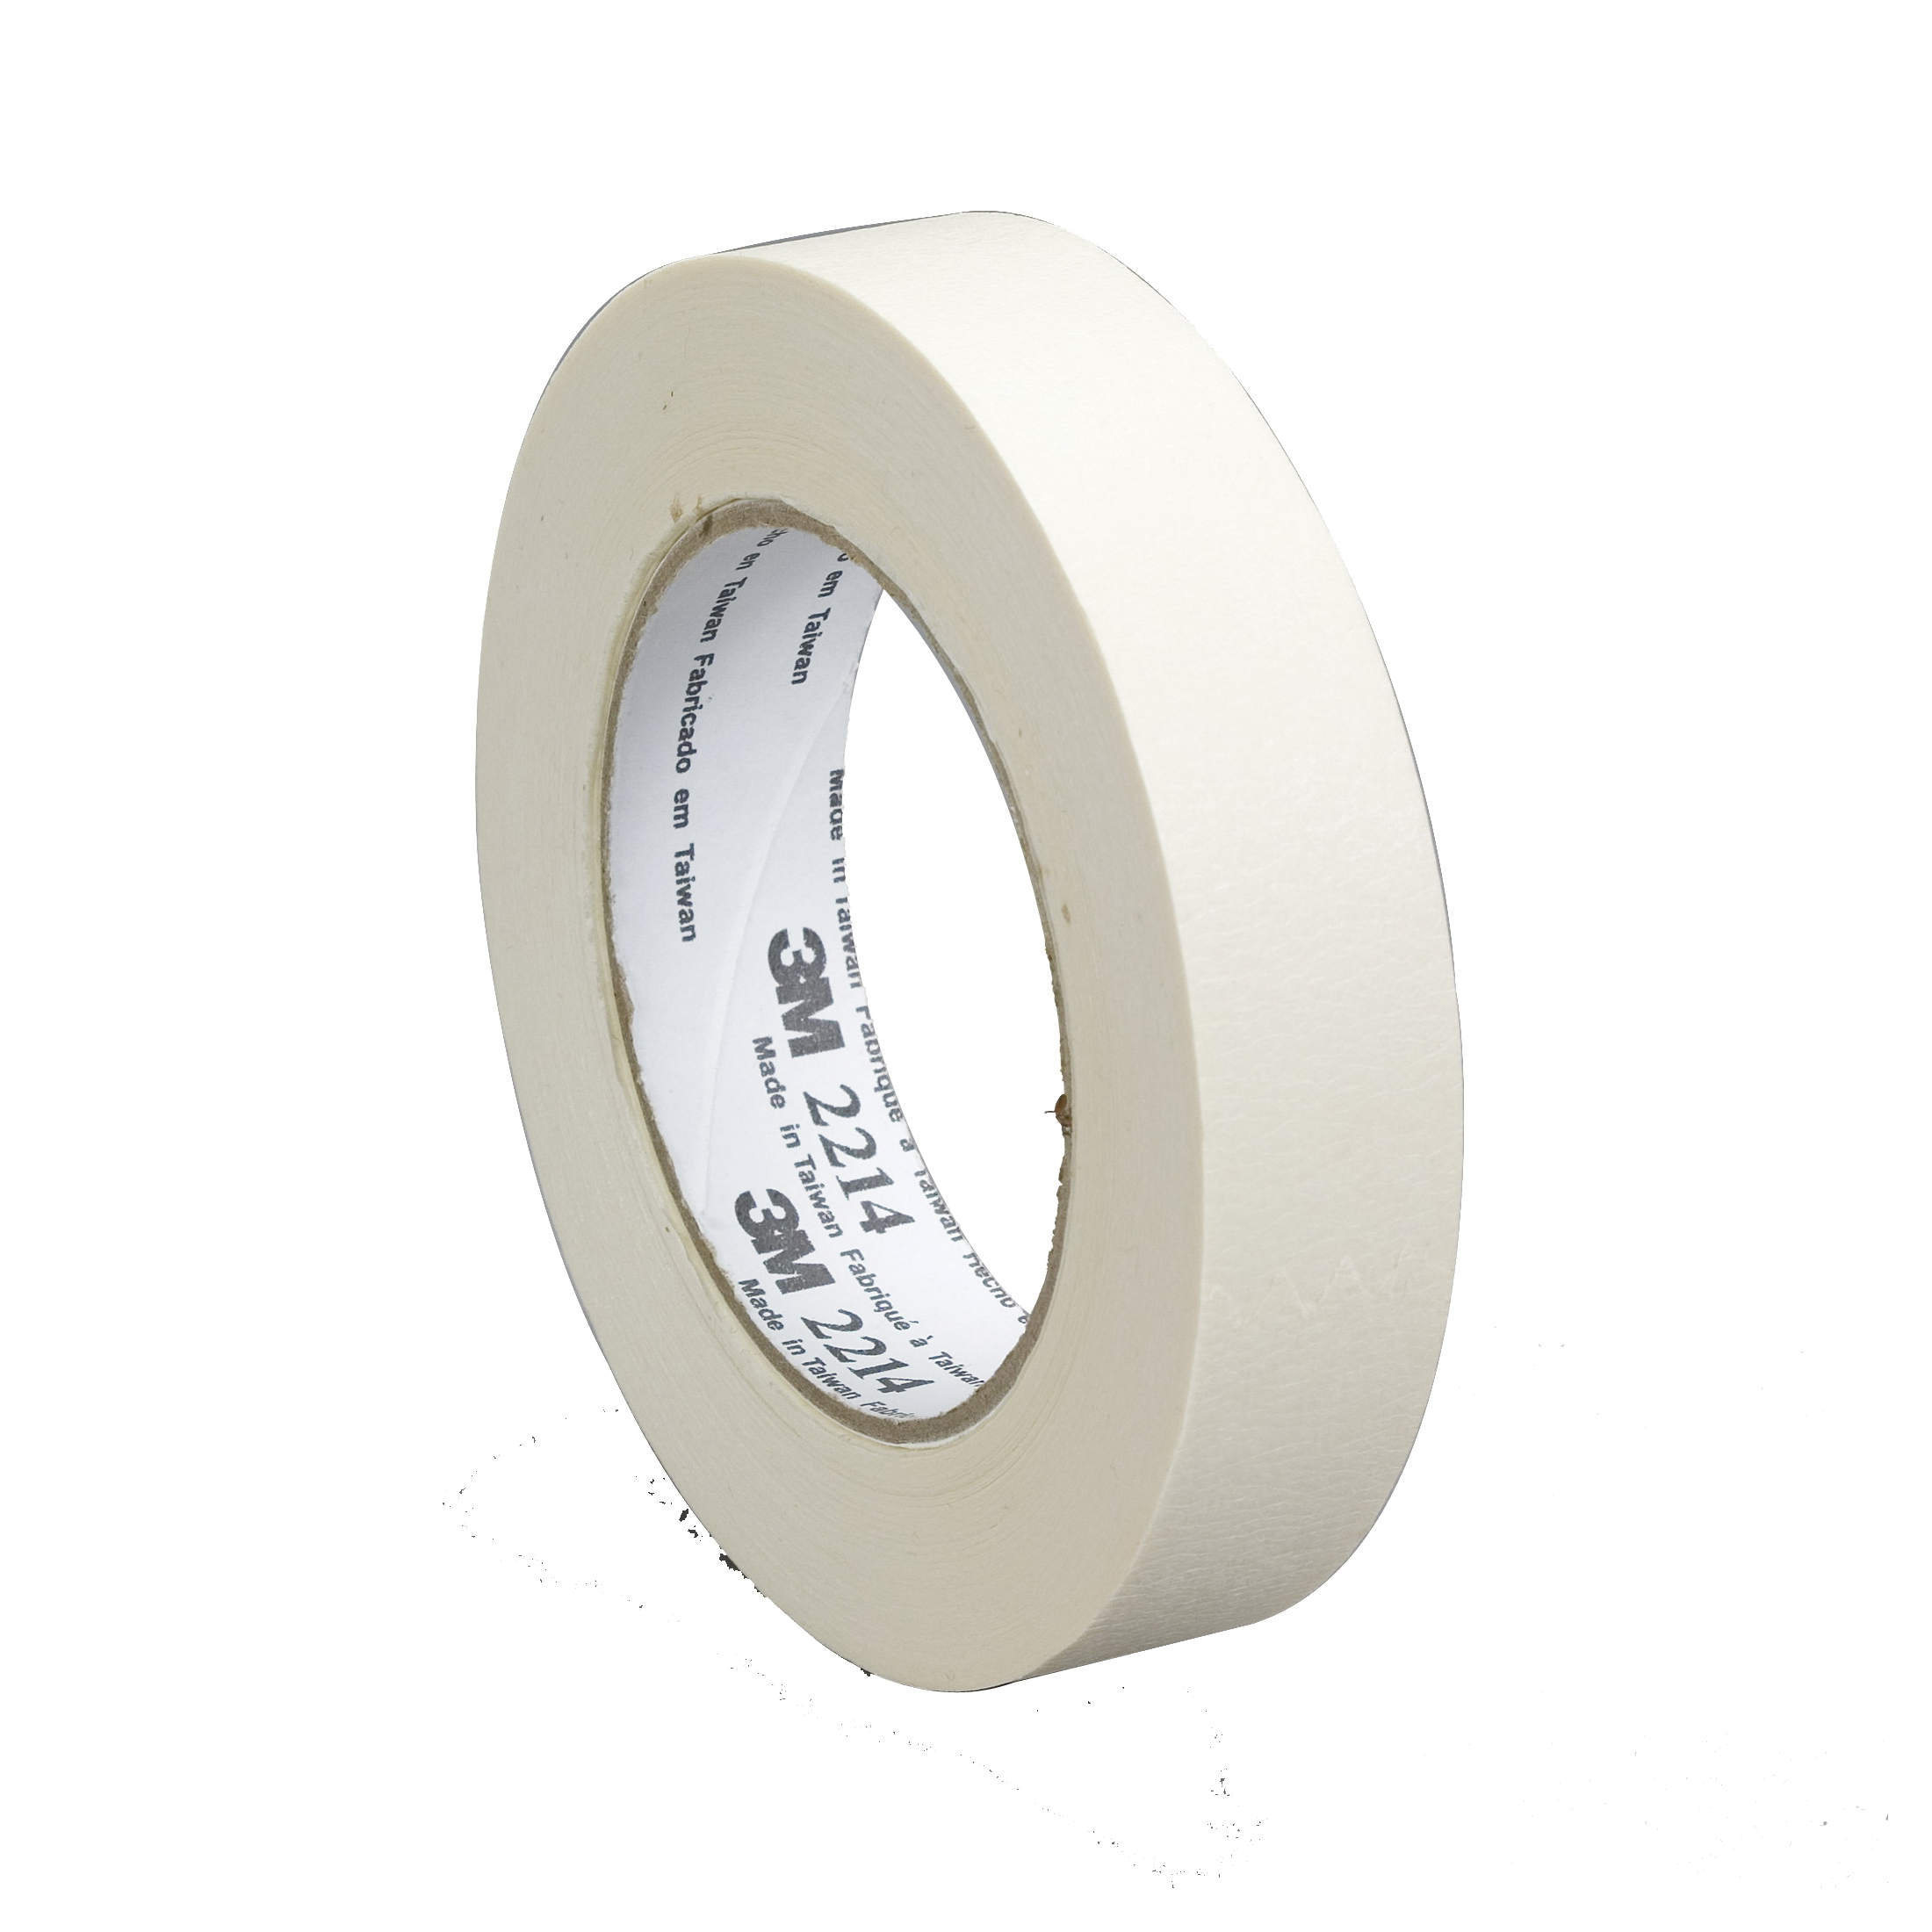 3M™ 021200-26076 Masking Tape, 55 m L x 36 mm W, 5.4 mil THK, Rubber Adhesive, Crepe Paper Backing